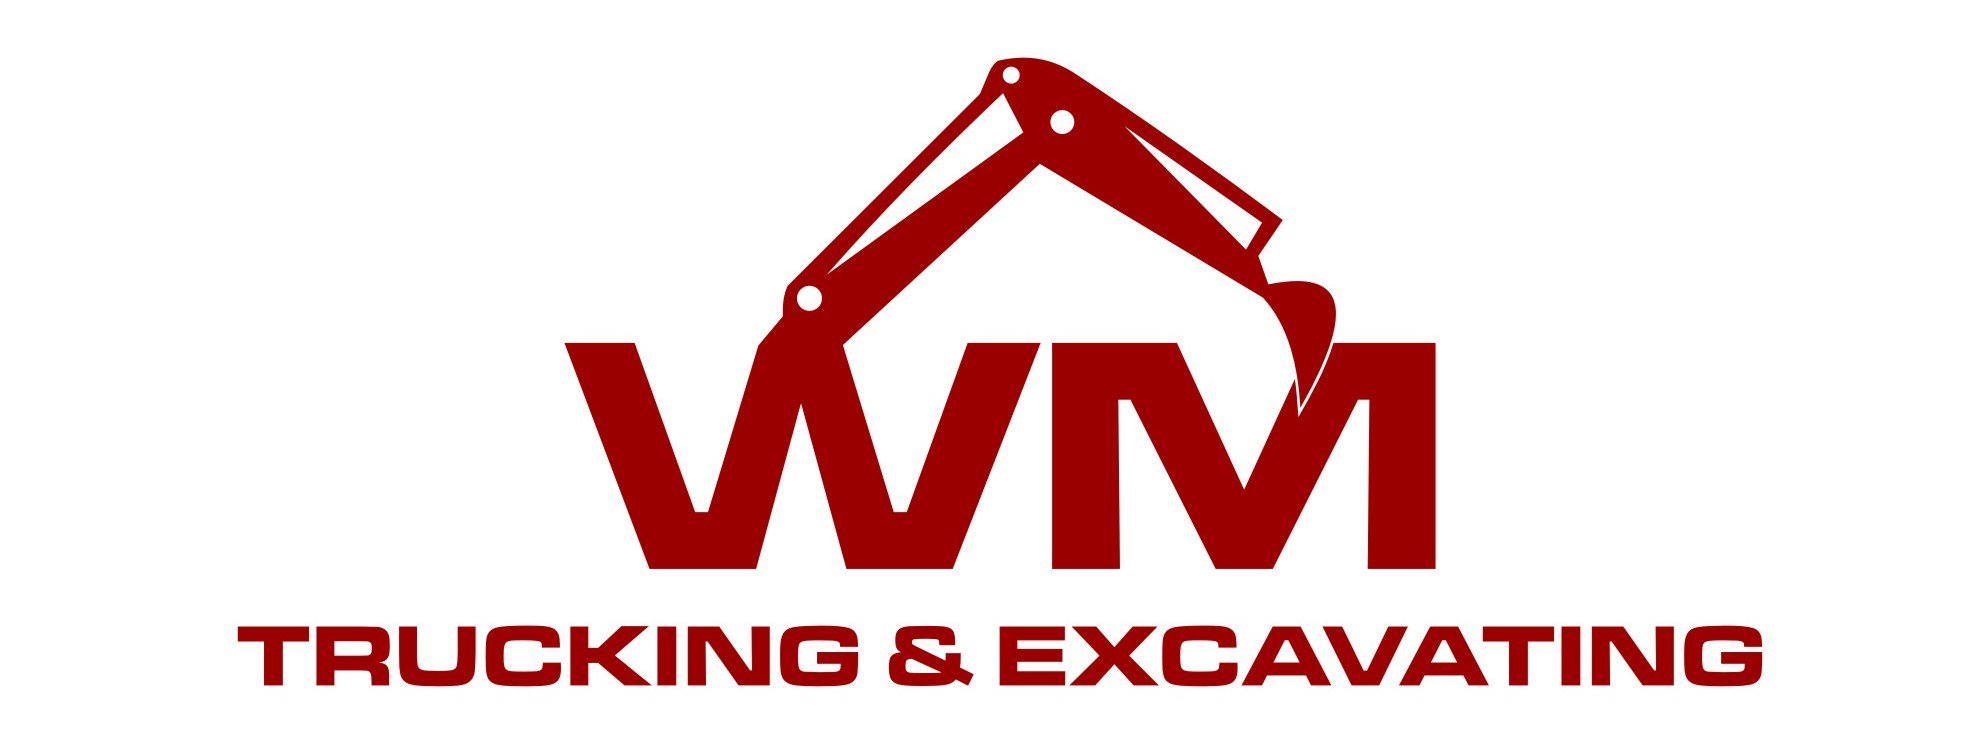 W M Trucking & Excavating Inc.